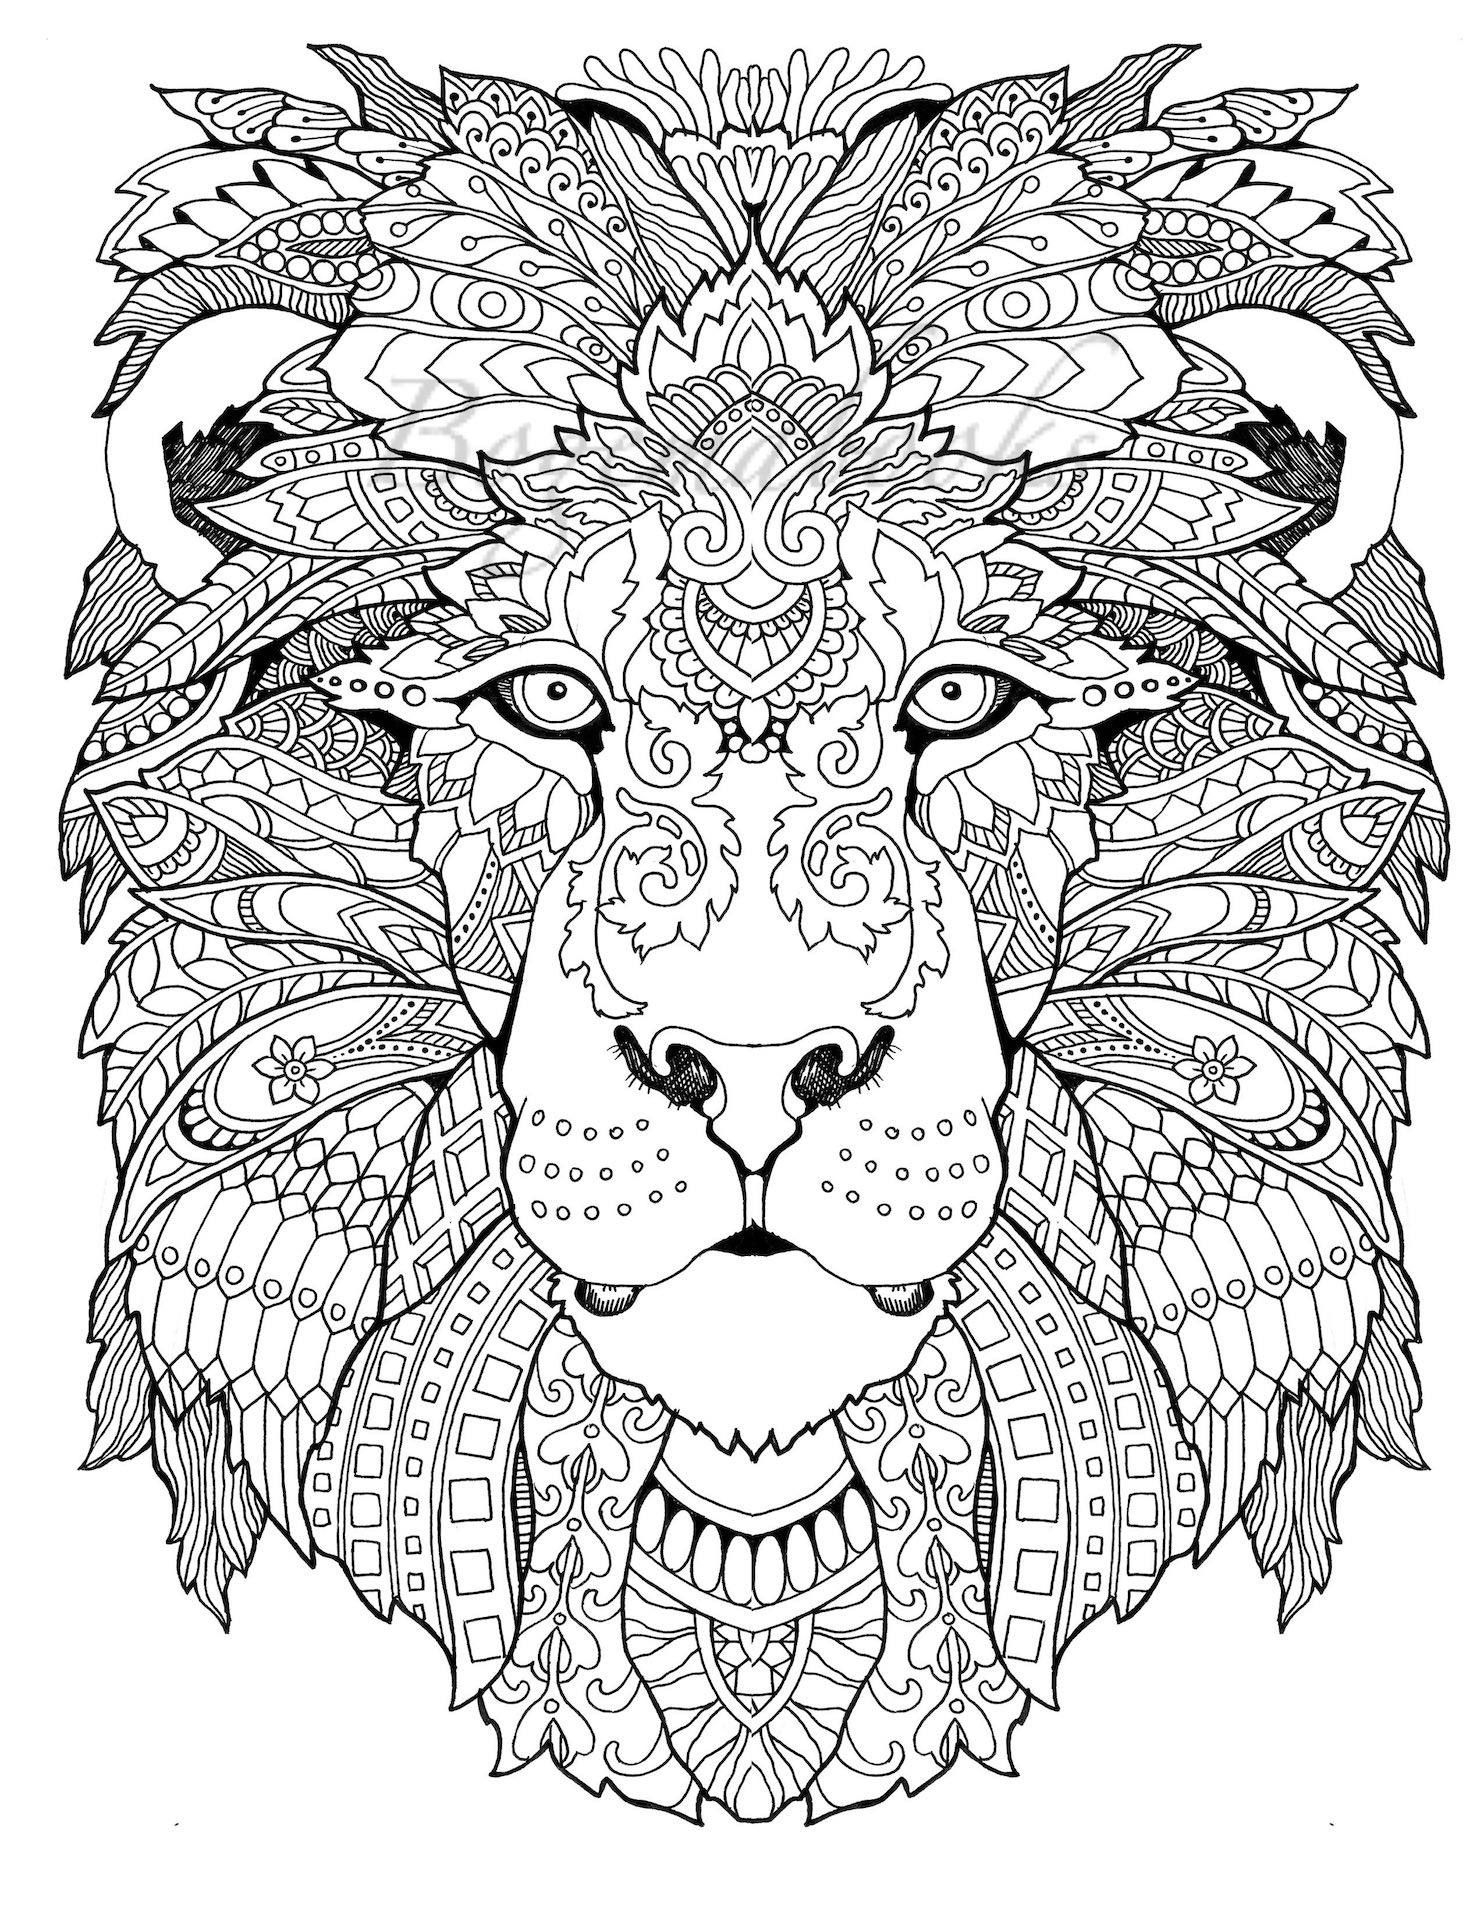 Awesome Animals Adult Coloring Book Coloring Pages Pdf | Awesome - Free Printable Coloring Pages For Adults Pdf